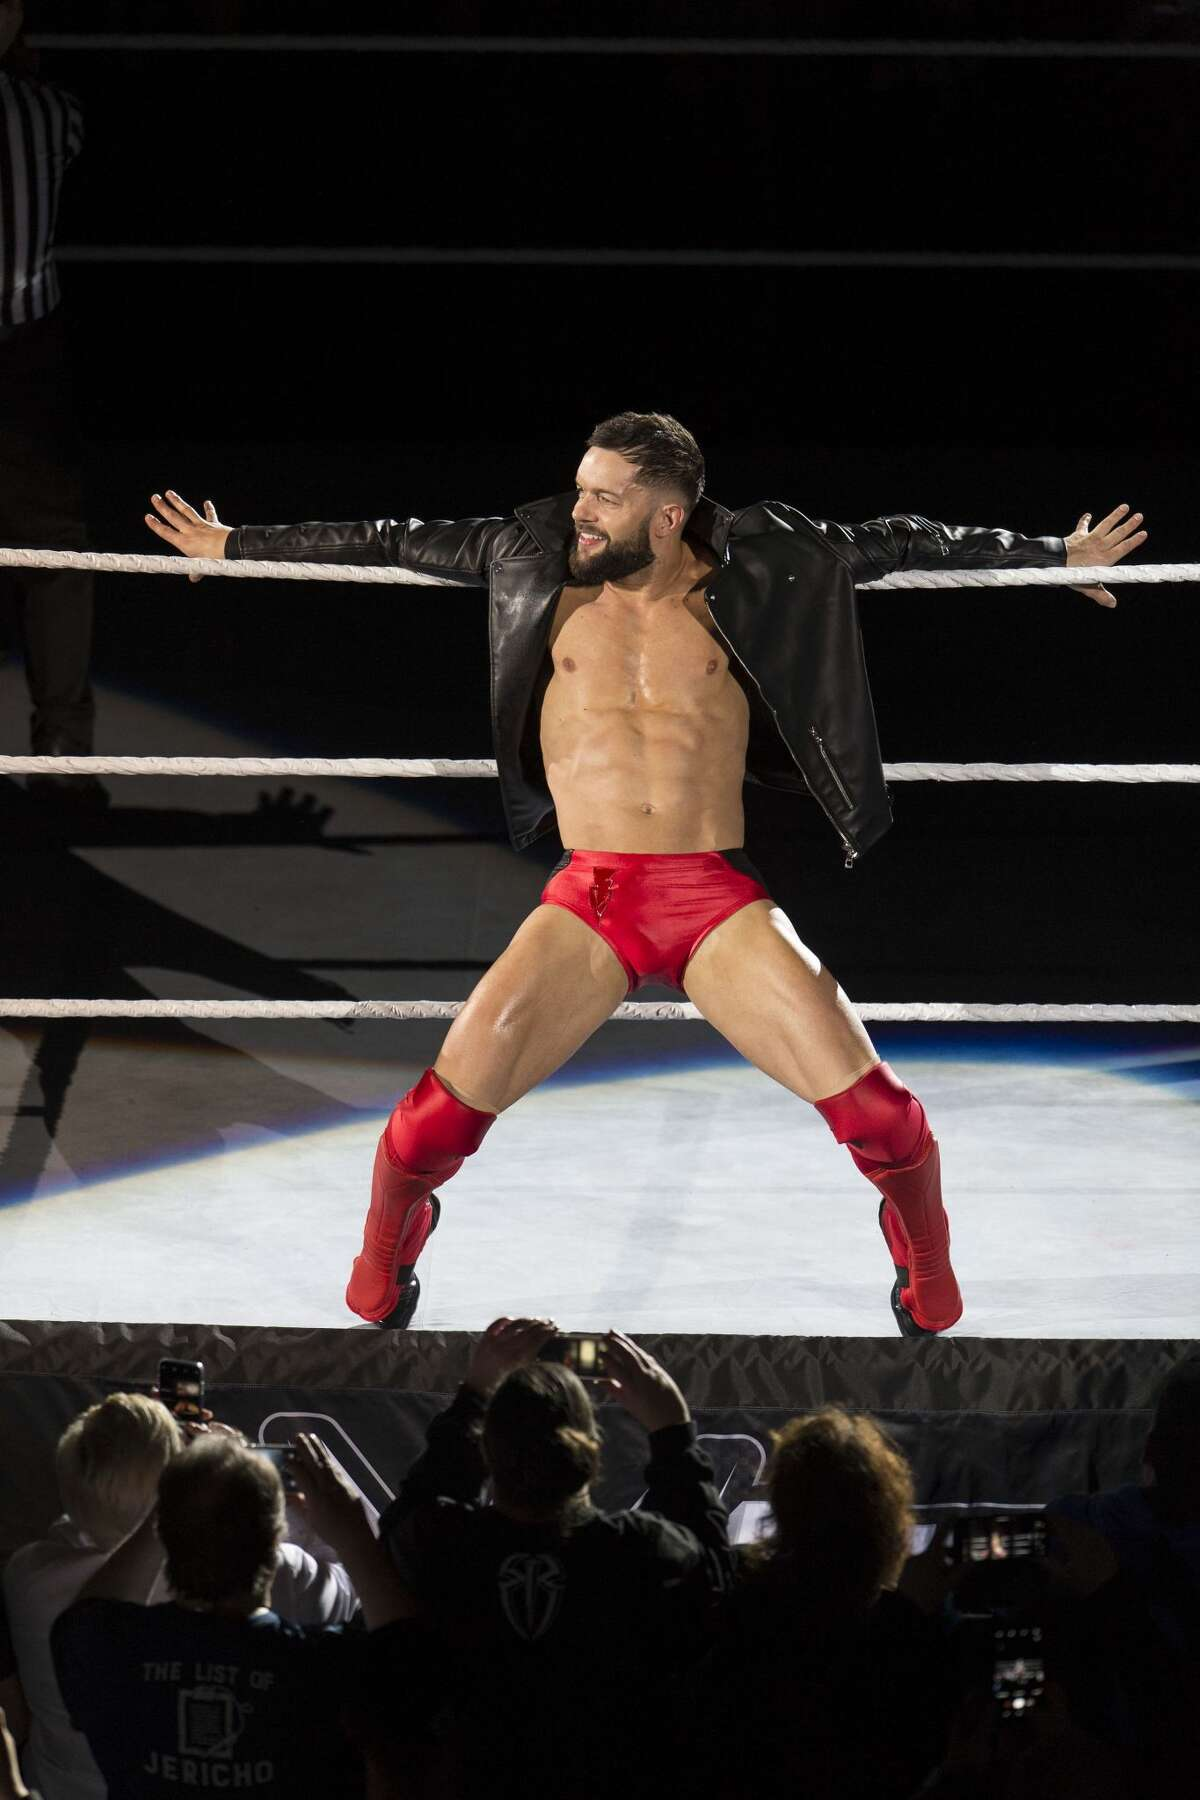 COLOGNE, GERMANY - NOVEMBER 07: Finn Balor during the WWE Live Show at Lanxess Arena on November 7, 2018 in Cologne, Germany. (Photo by Marc Pfitzenreuter/Getty Images)